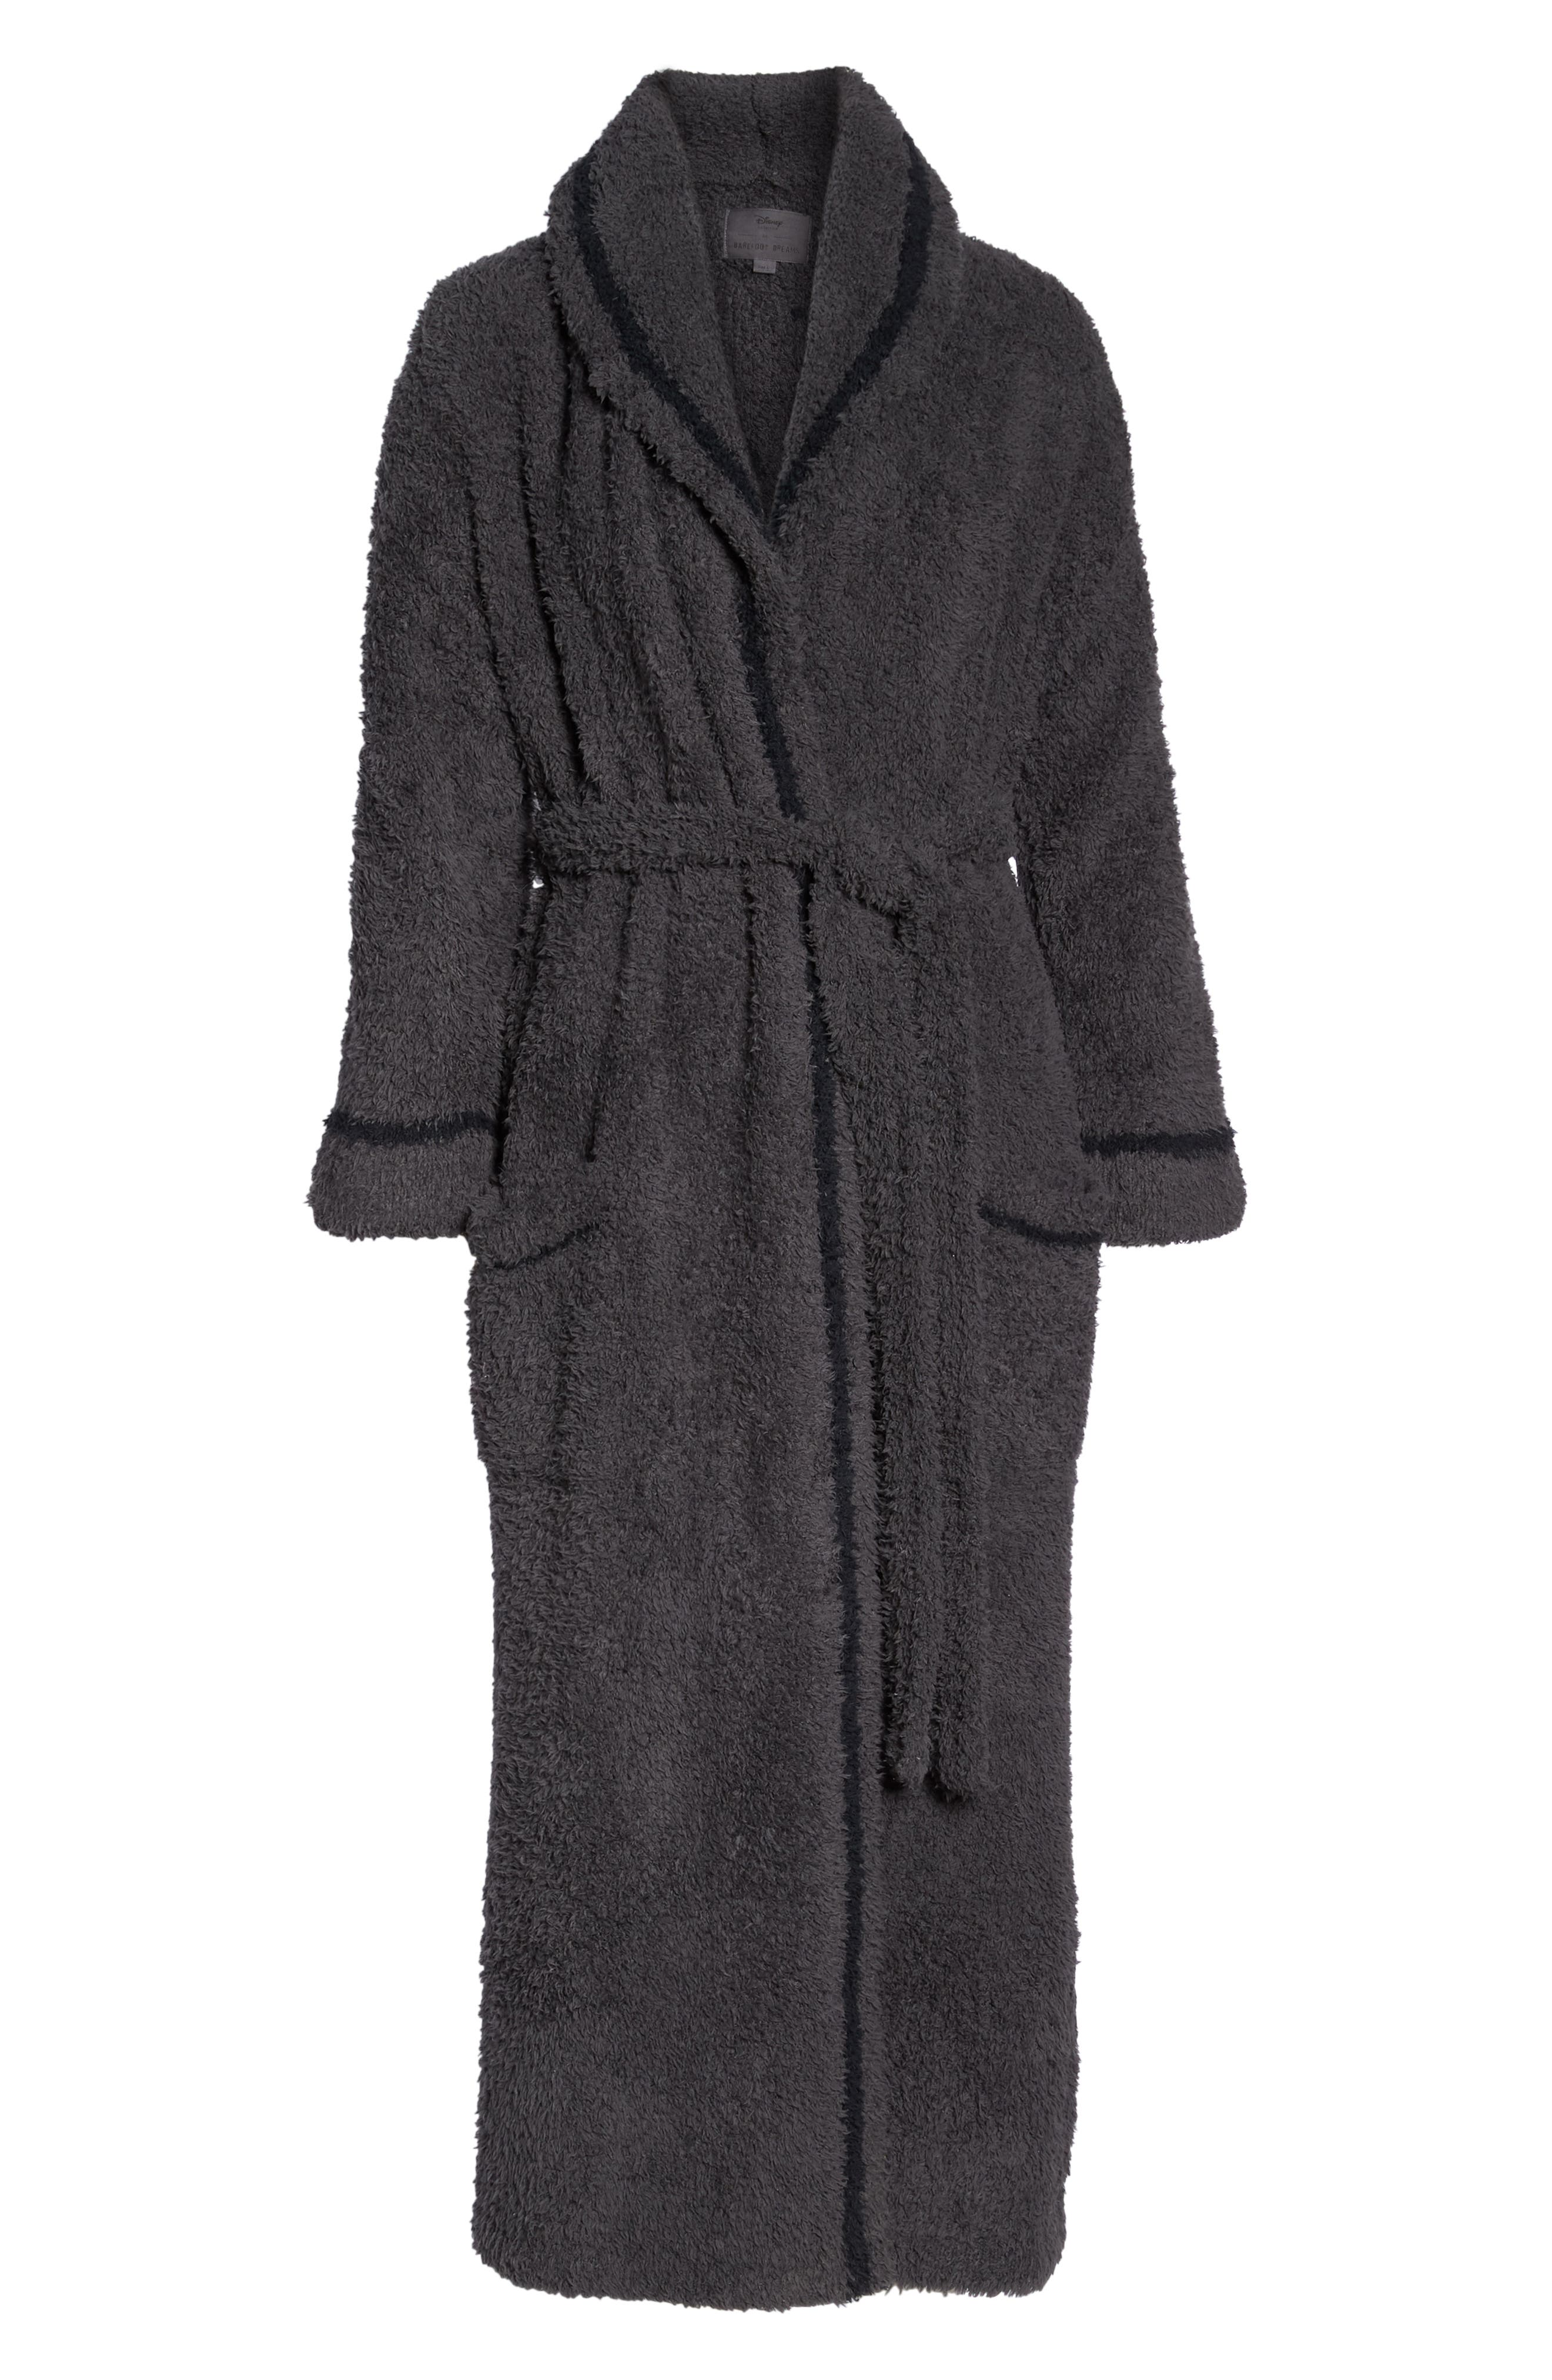 x Disney Classic Series CozyChic<sup>®</sup> Robe,                             Alternate thumbnail 6, color,                             CARBON/ BLACK